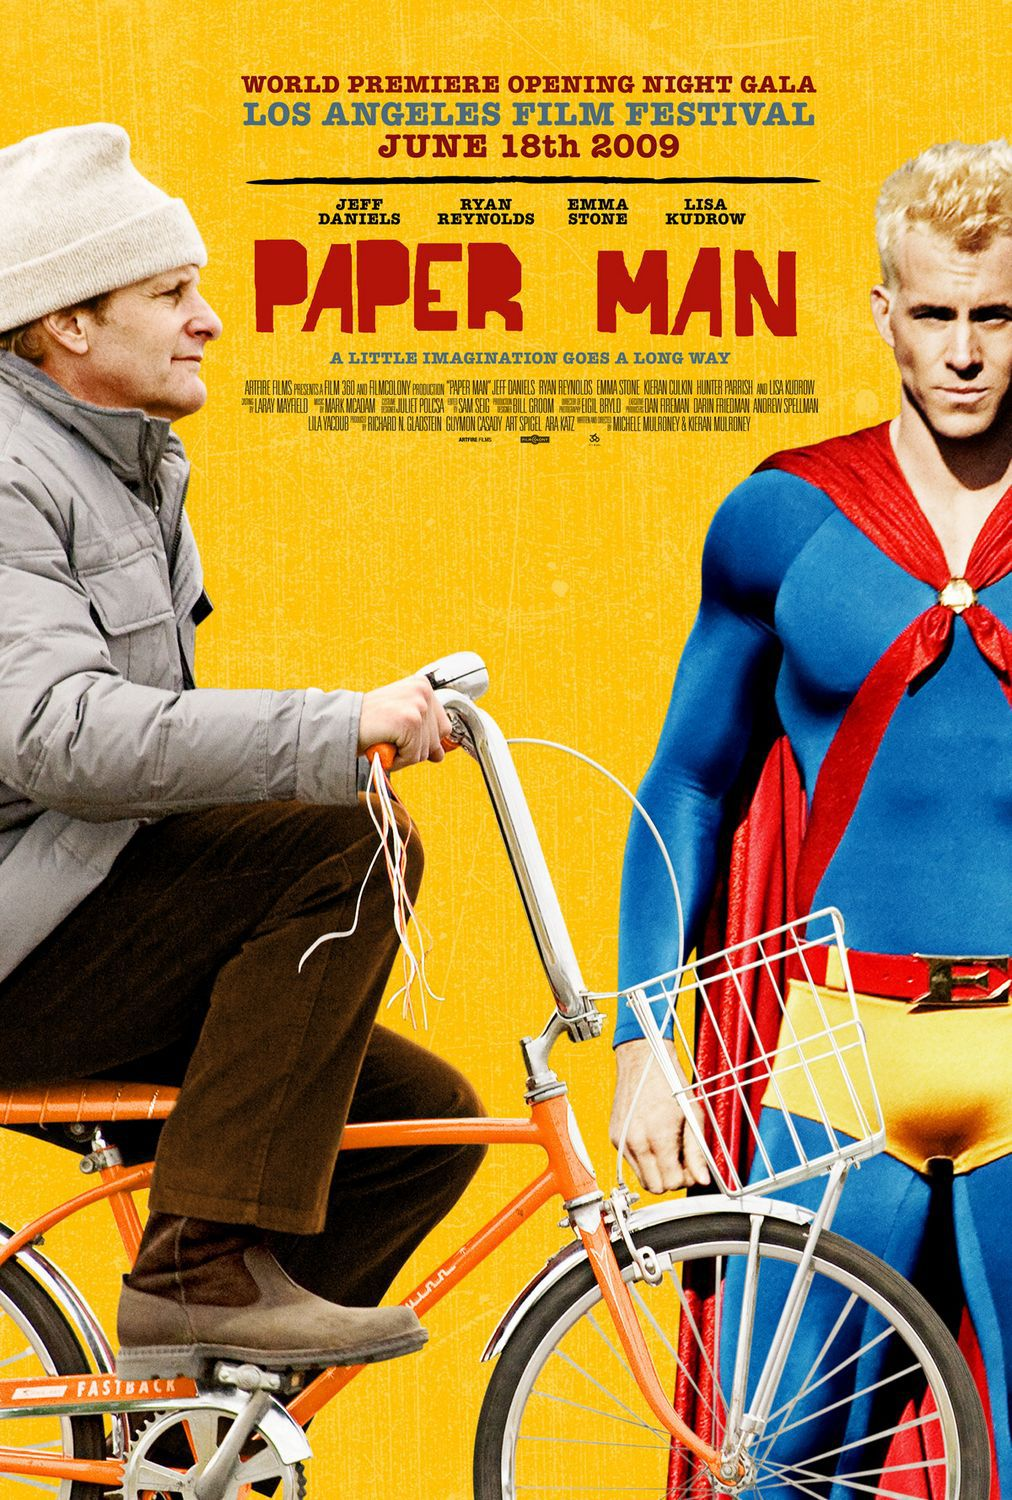 Paper Man - Uomo di Carta - film poster  super blue red and yellow suit